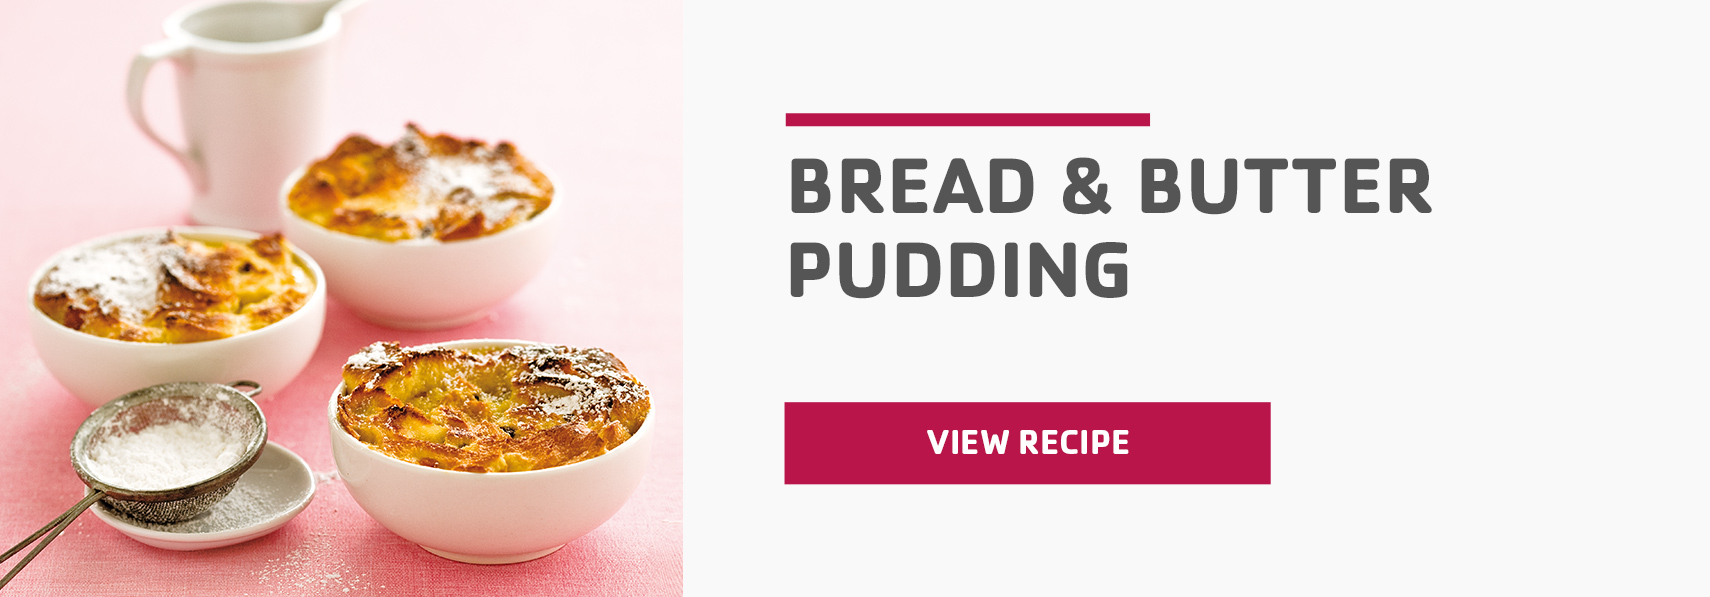 Bread-&-Butter-Pudding-banner.jpg